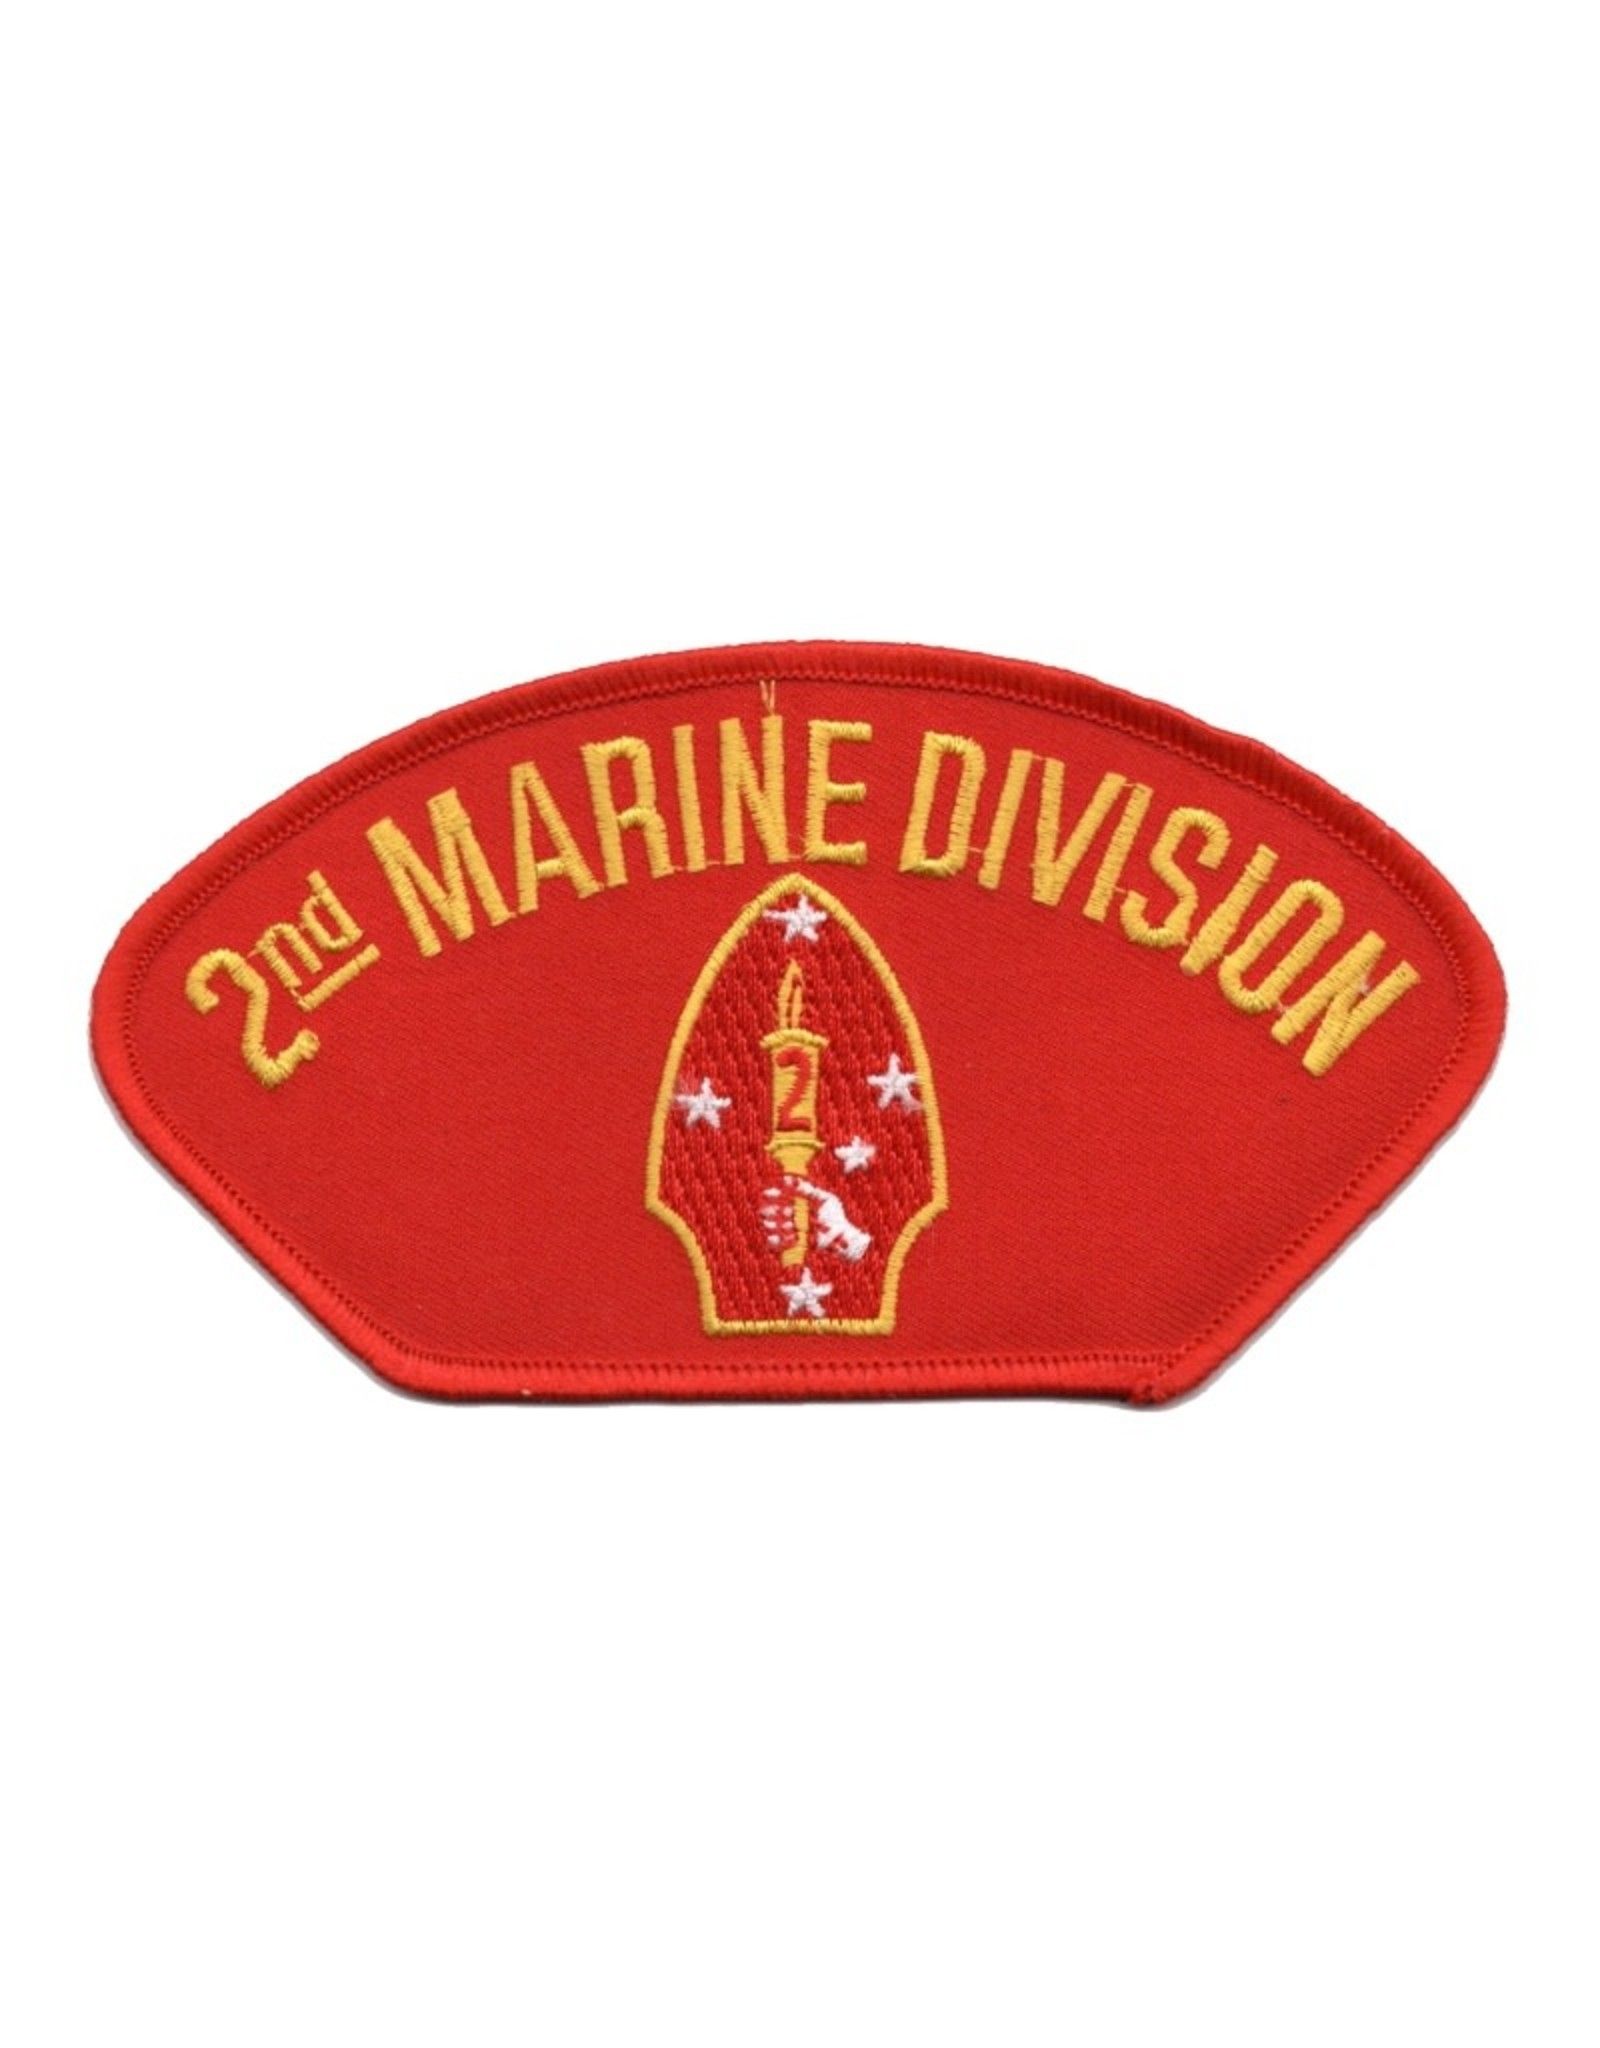 """MidMil Embroidered 2nd Marine Division Patch with Emblem 5.2"""" wide x 2.8"""" high Red"""